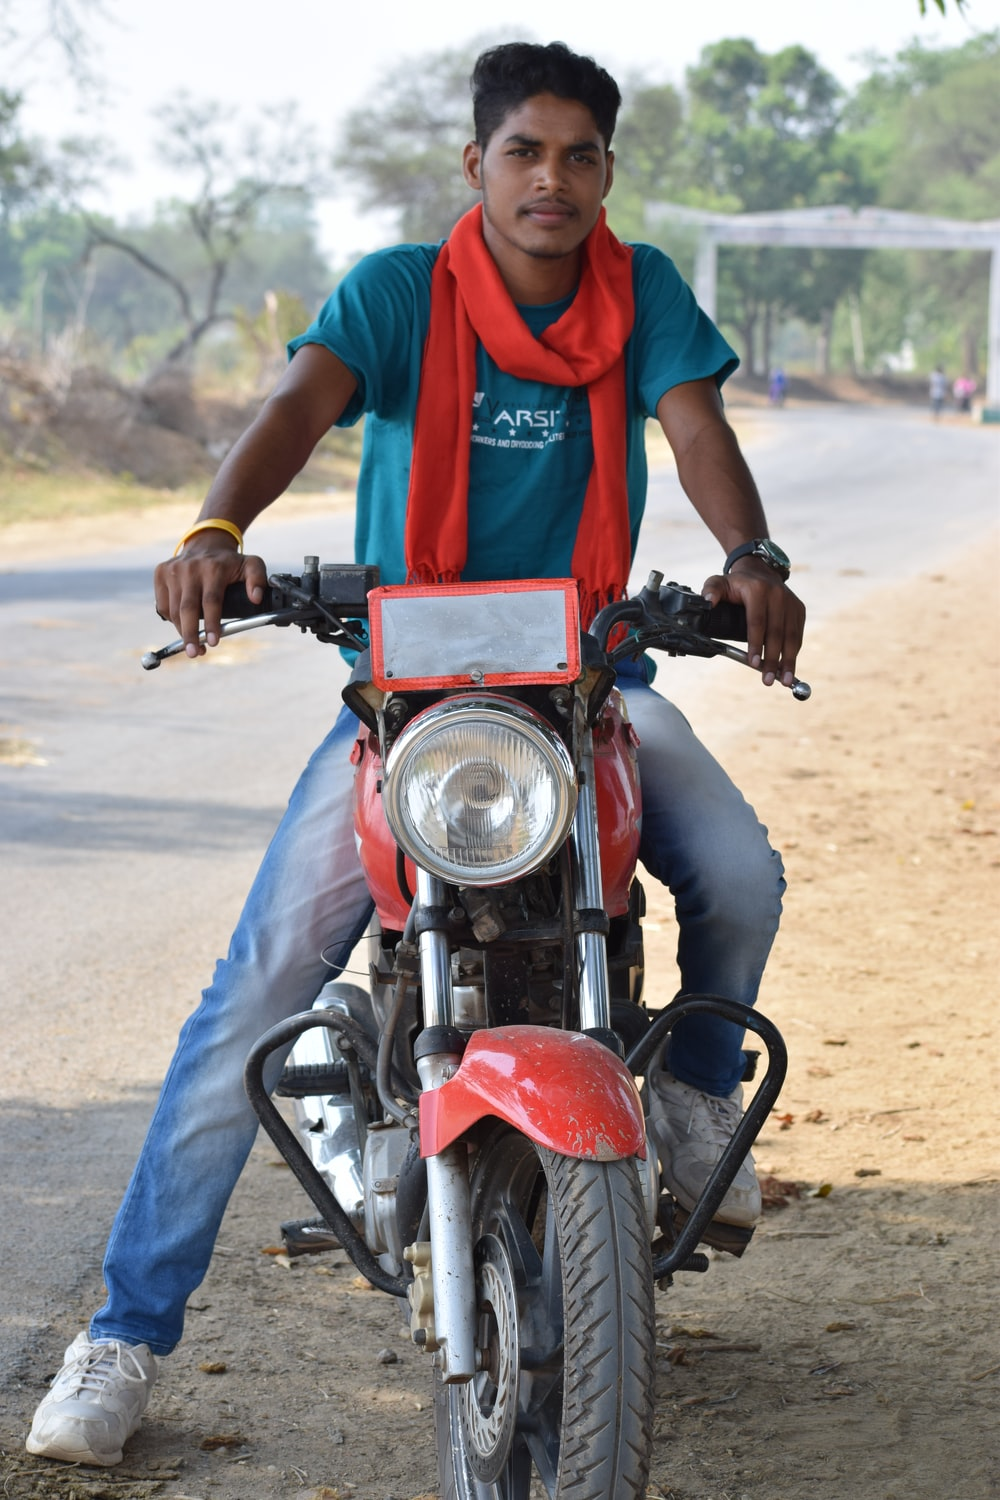 man on red motorcycle